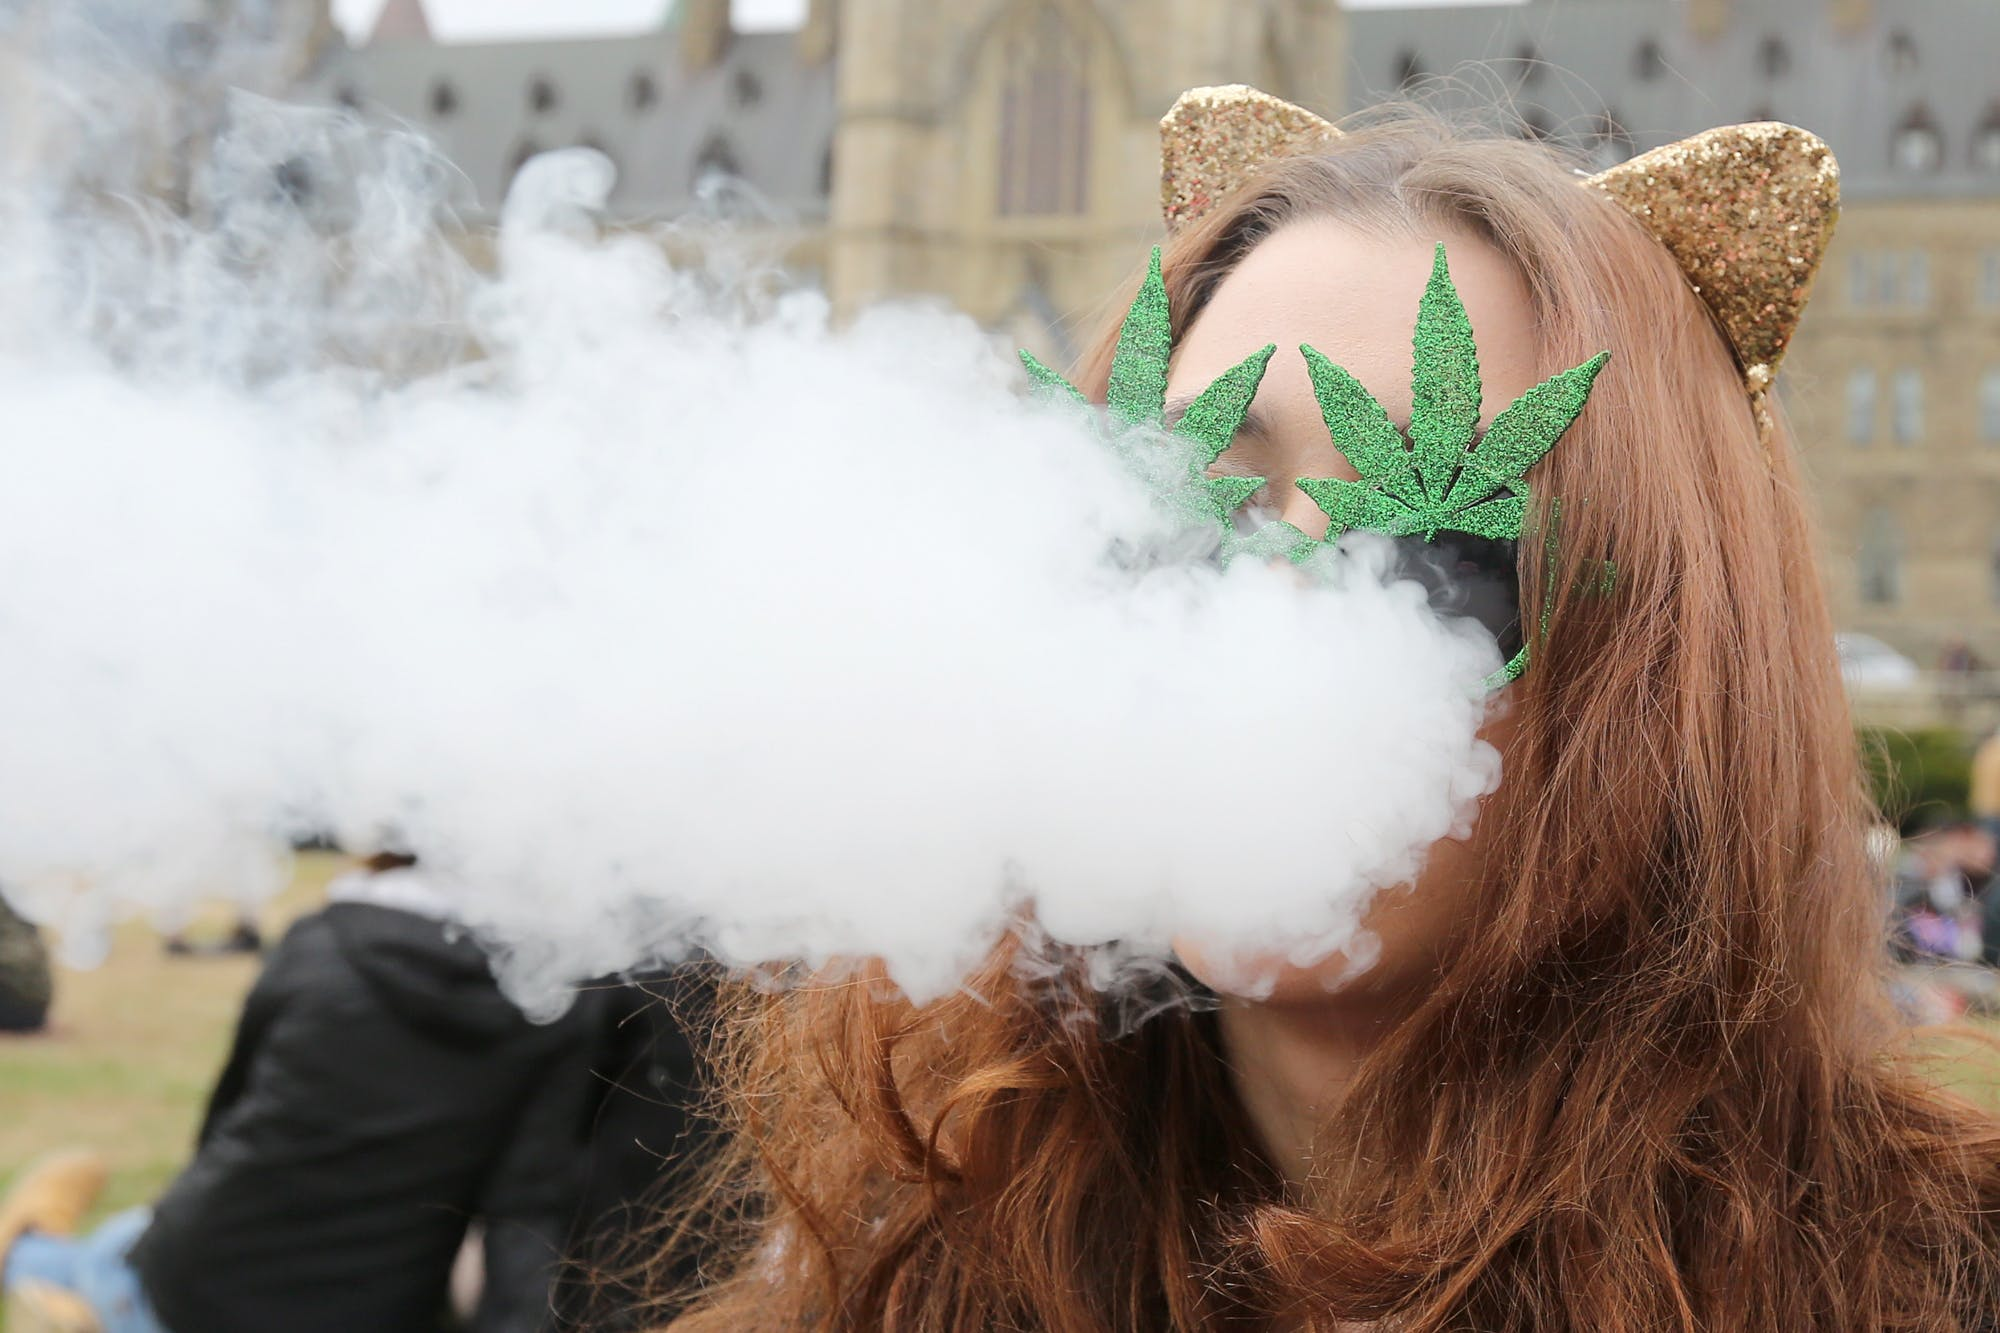 Legal weed is coming to Canada in 2018. Here's what your province will look like 1 of 5 What needs to happen for Vermont to legalize marijuana